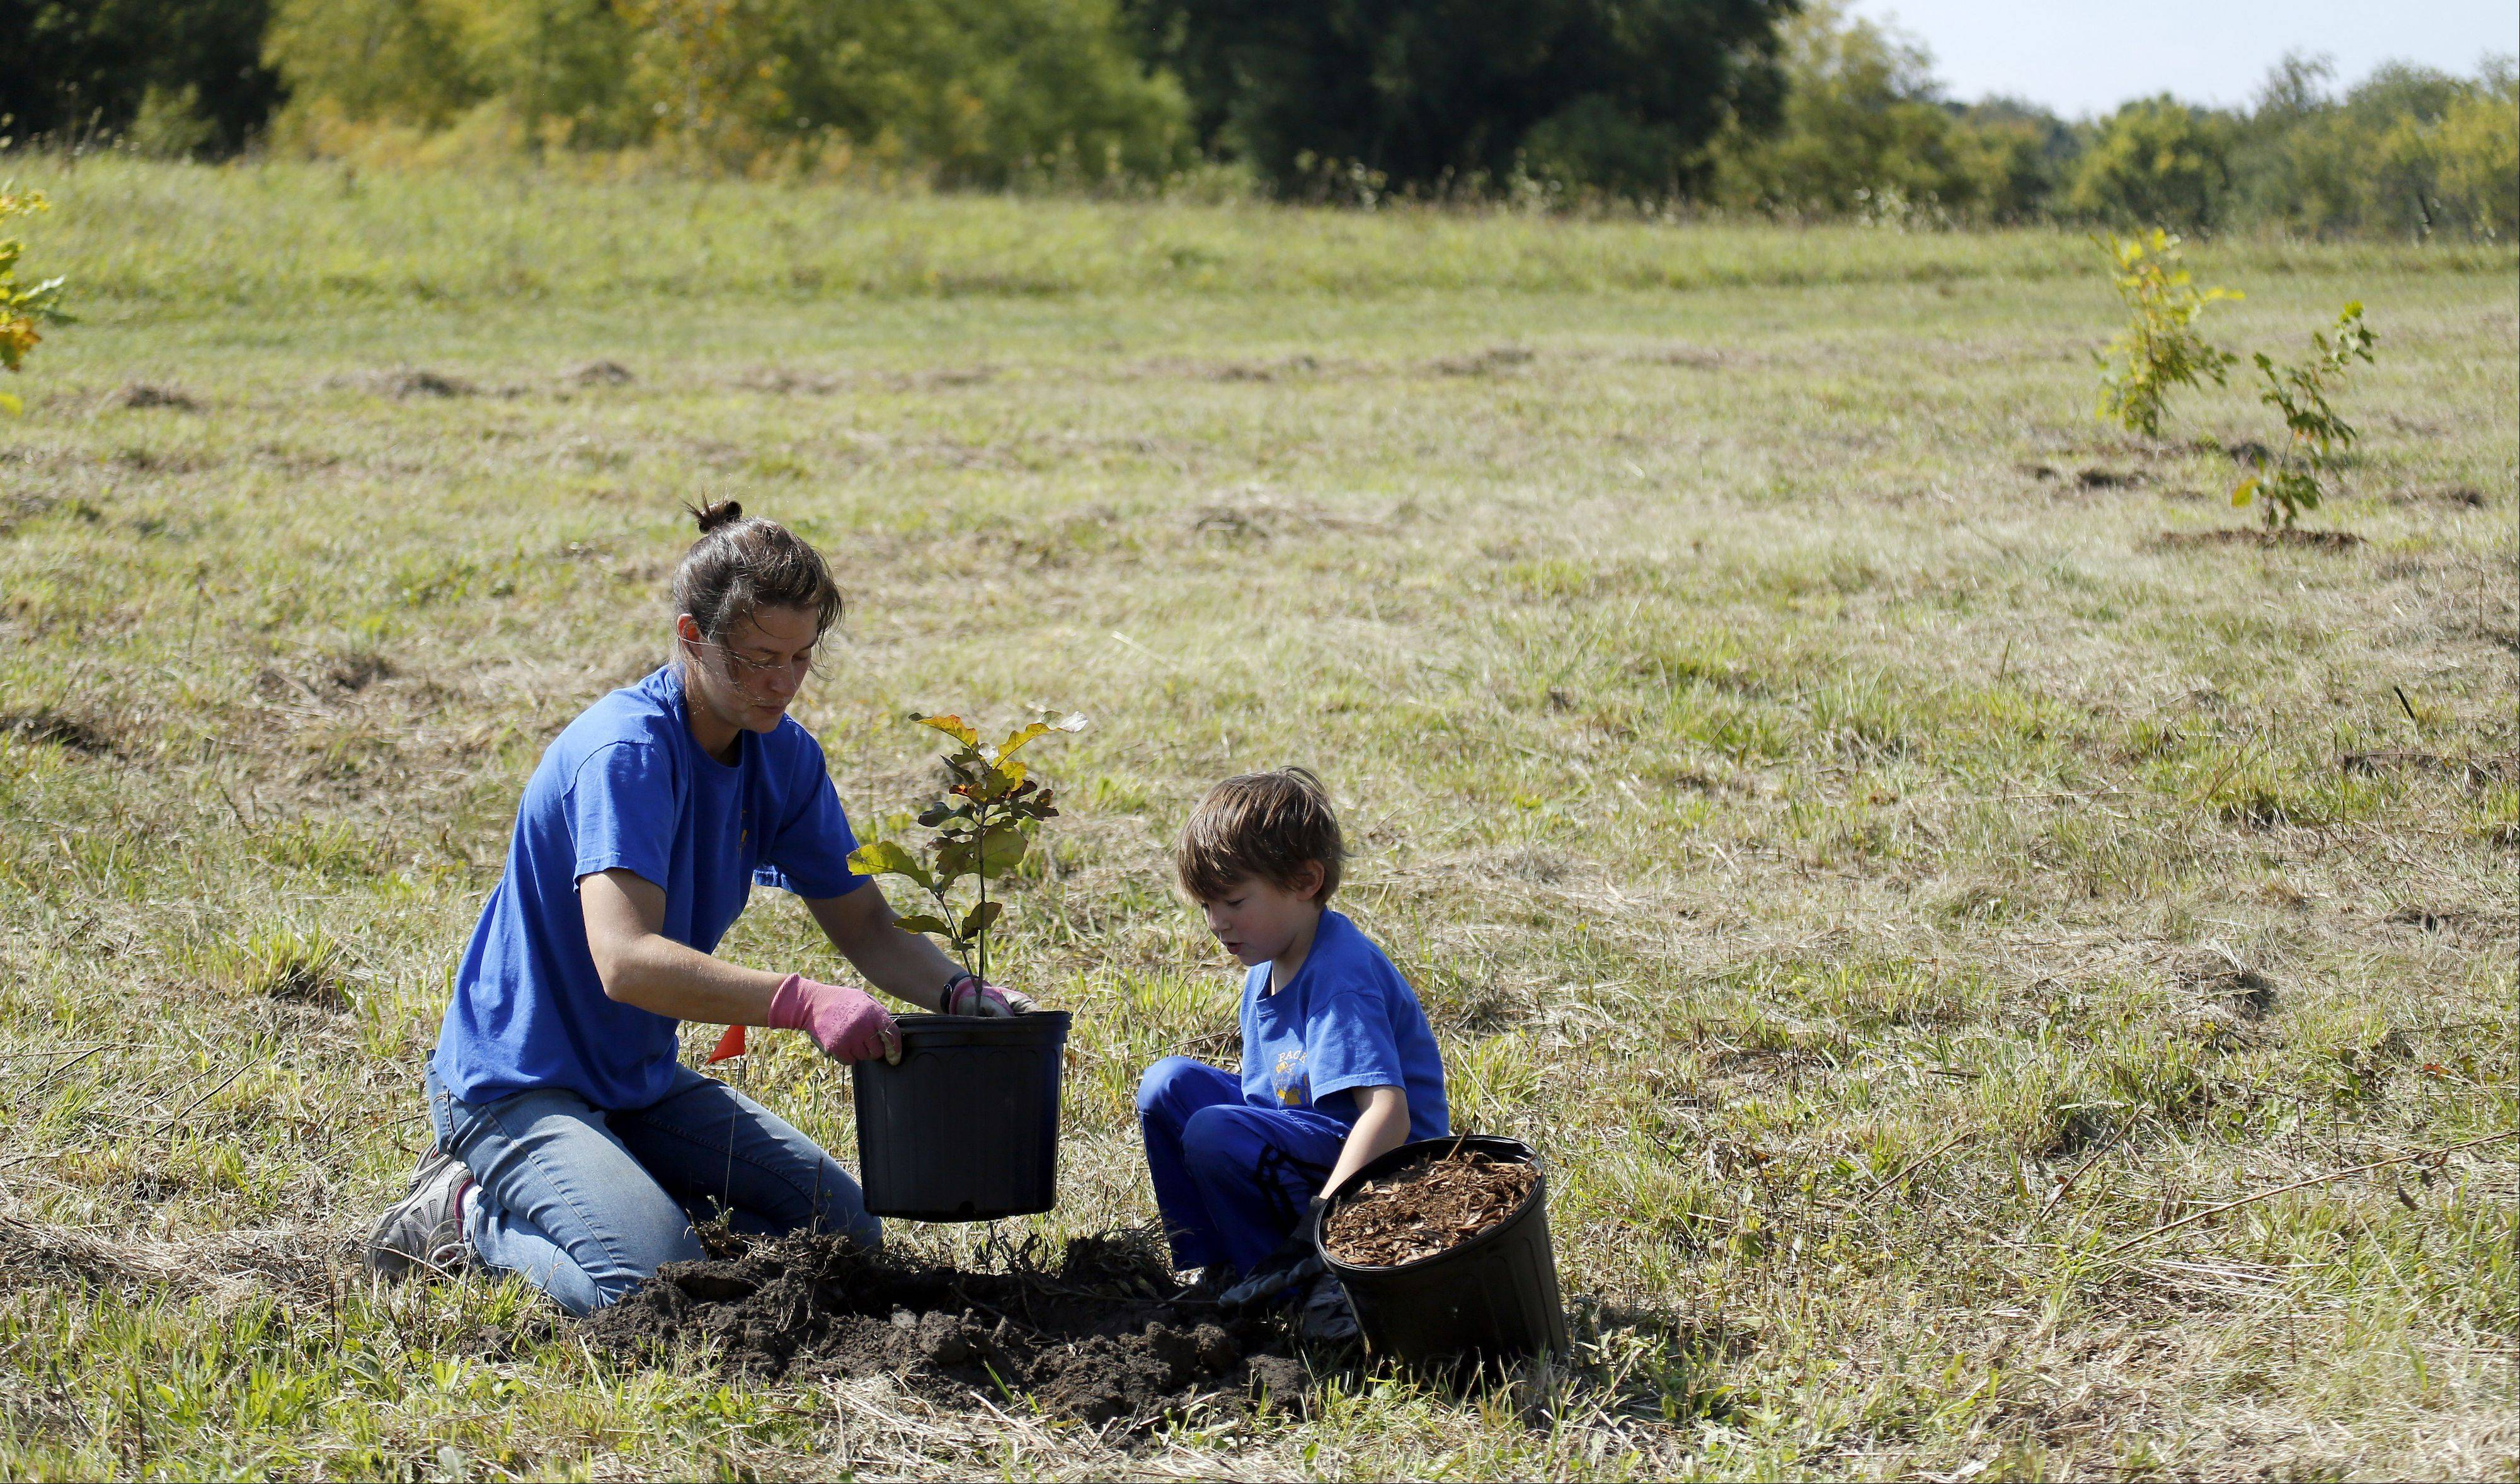 Six-year-old Torin Holda of Geneva and his mom Jaimie prepare to plant a tree. Volunteers helped plant 600 oak trees in under three hours as part of National Public Lands Day Saturday at Schweitzer Woods Forest Preserve near West Dundee.